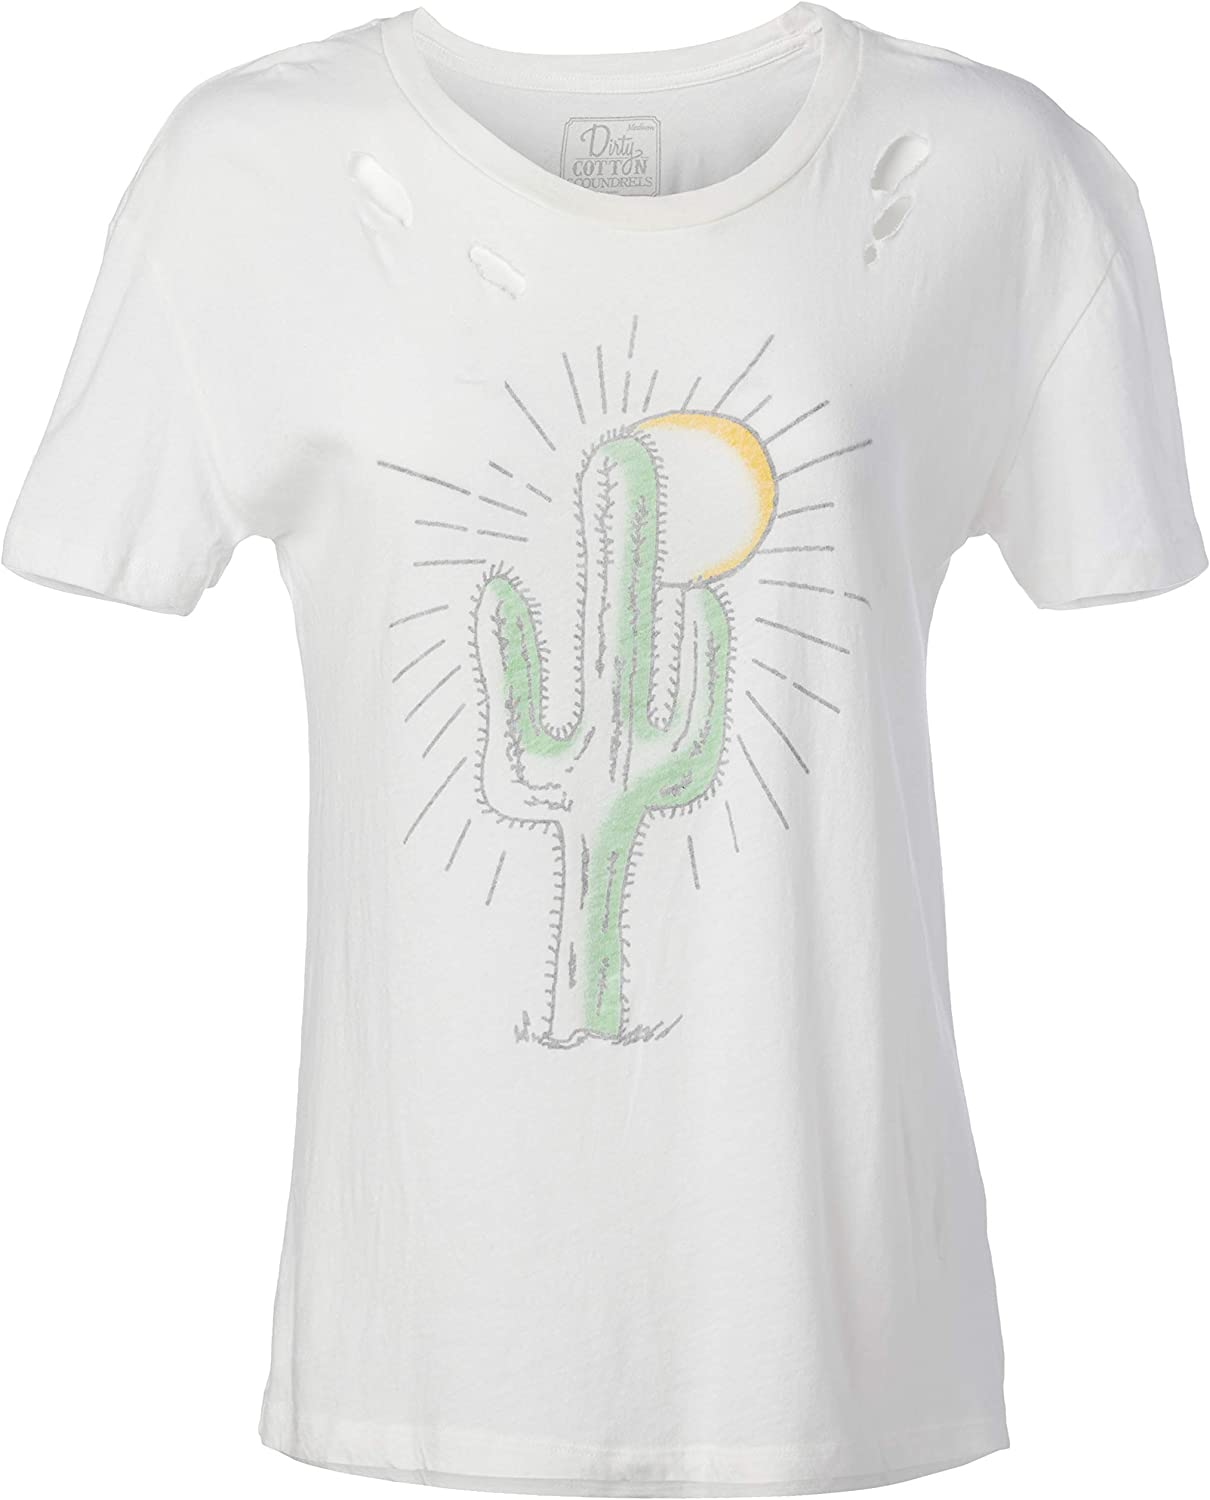 Goodie Two Sleeves Juniors Palm Springs Cactus Rays Graphic Tee